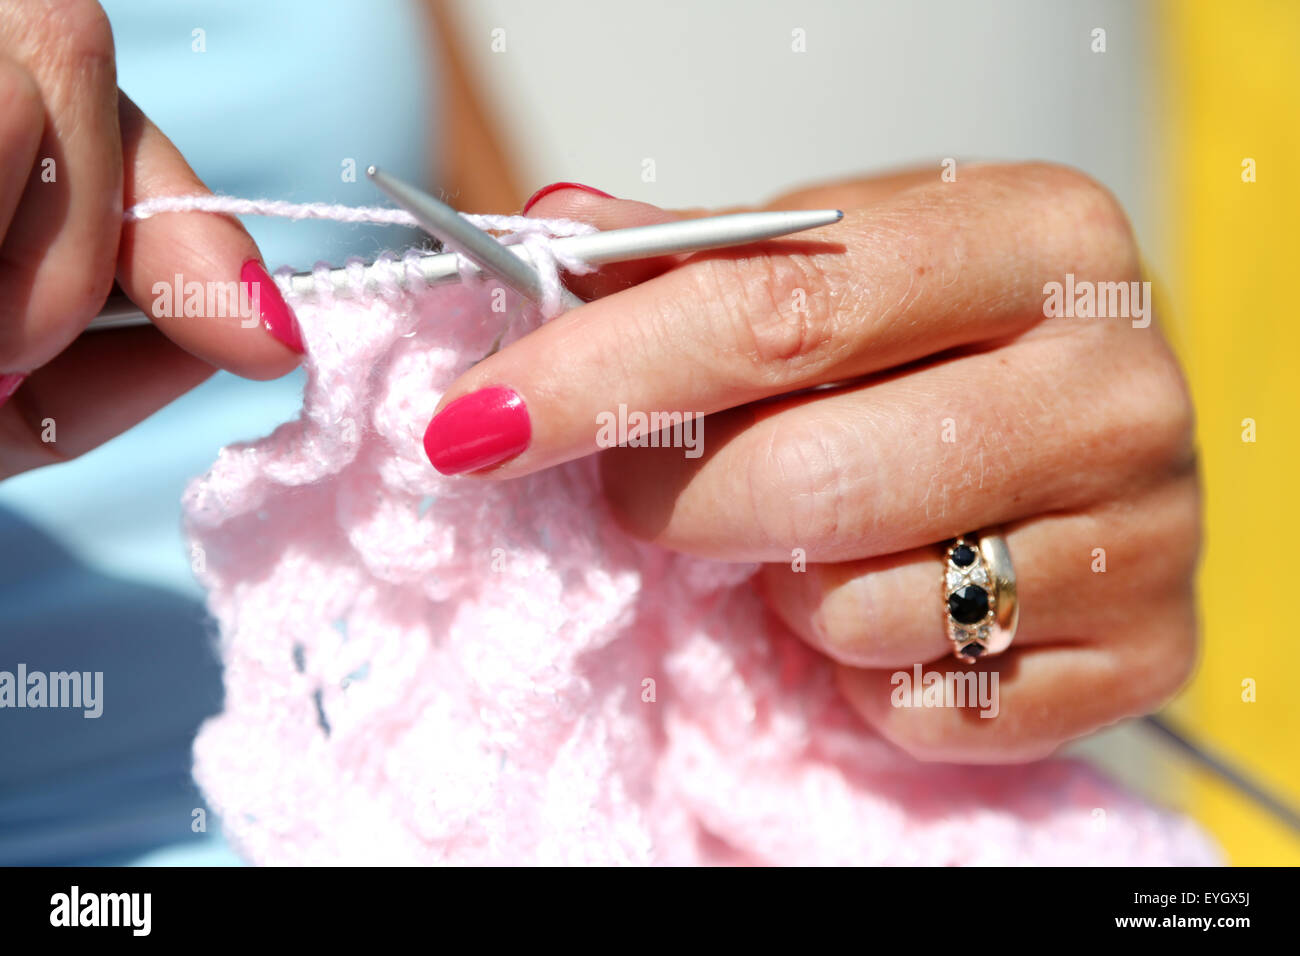 A woman using knitting needles to knit a pink woollen cardigan using a purl stitch - Stock Image